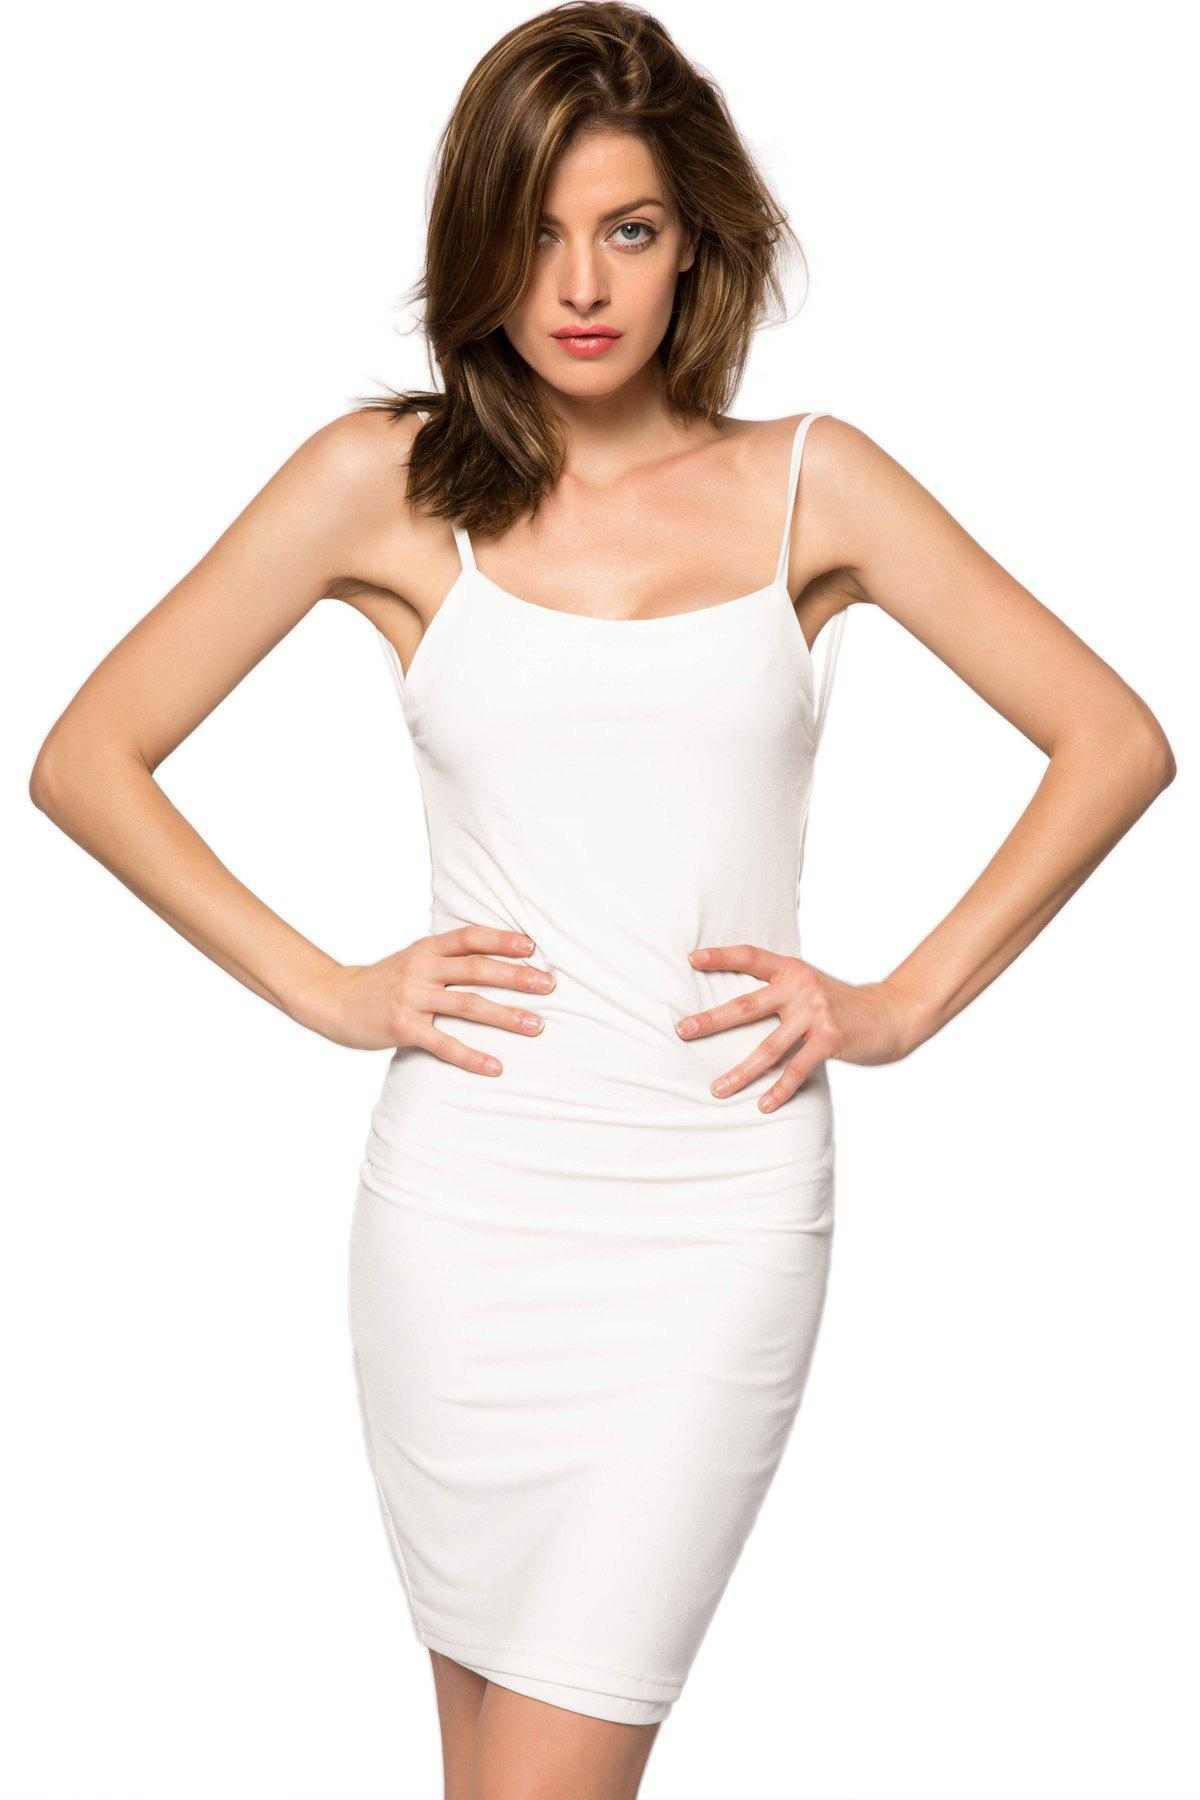 Backless Spaghetti Straps Bodycon Dress - WHITE L